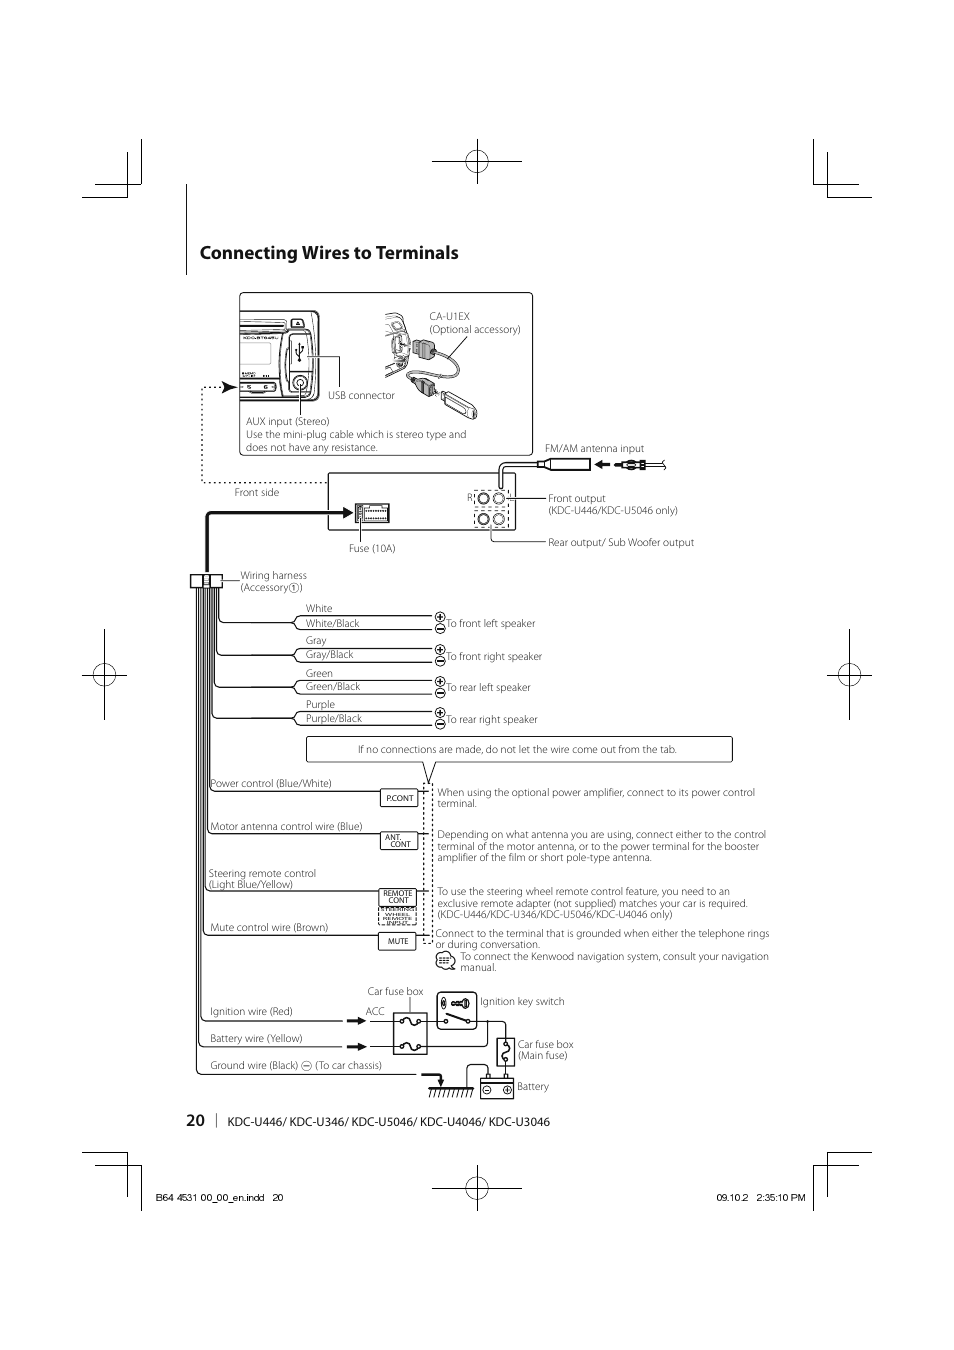 Connecting wires to terminals | Kenwood KDC-U3046 User ... on jvc wiring diagram, nissan maxima audio wiring diagram, clarion wiring diagram, alpine wiring diagram, reading wiring diagram, samsung wiring diagram, jackson wiring diagram, apple wiring diagram, concord wiring diagram, lincoln wiring diagram, hayward wiring diagram, ge wiring diagram, rca wiring diagram, fisher wiring diagram, sony wiring diagram, jl audio wiring diagram, panasonic wiring diagram, pioneer wiring diagram, jensen wiring diagram, columbia wiring diagram,